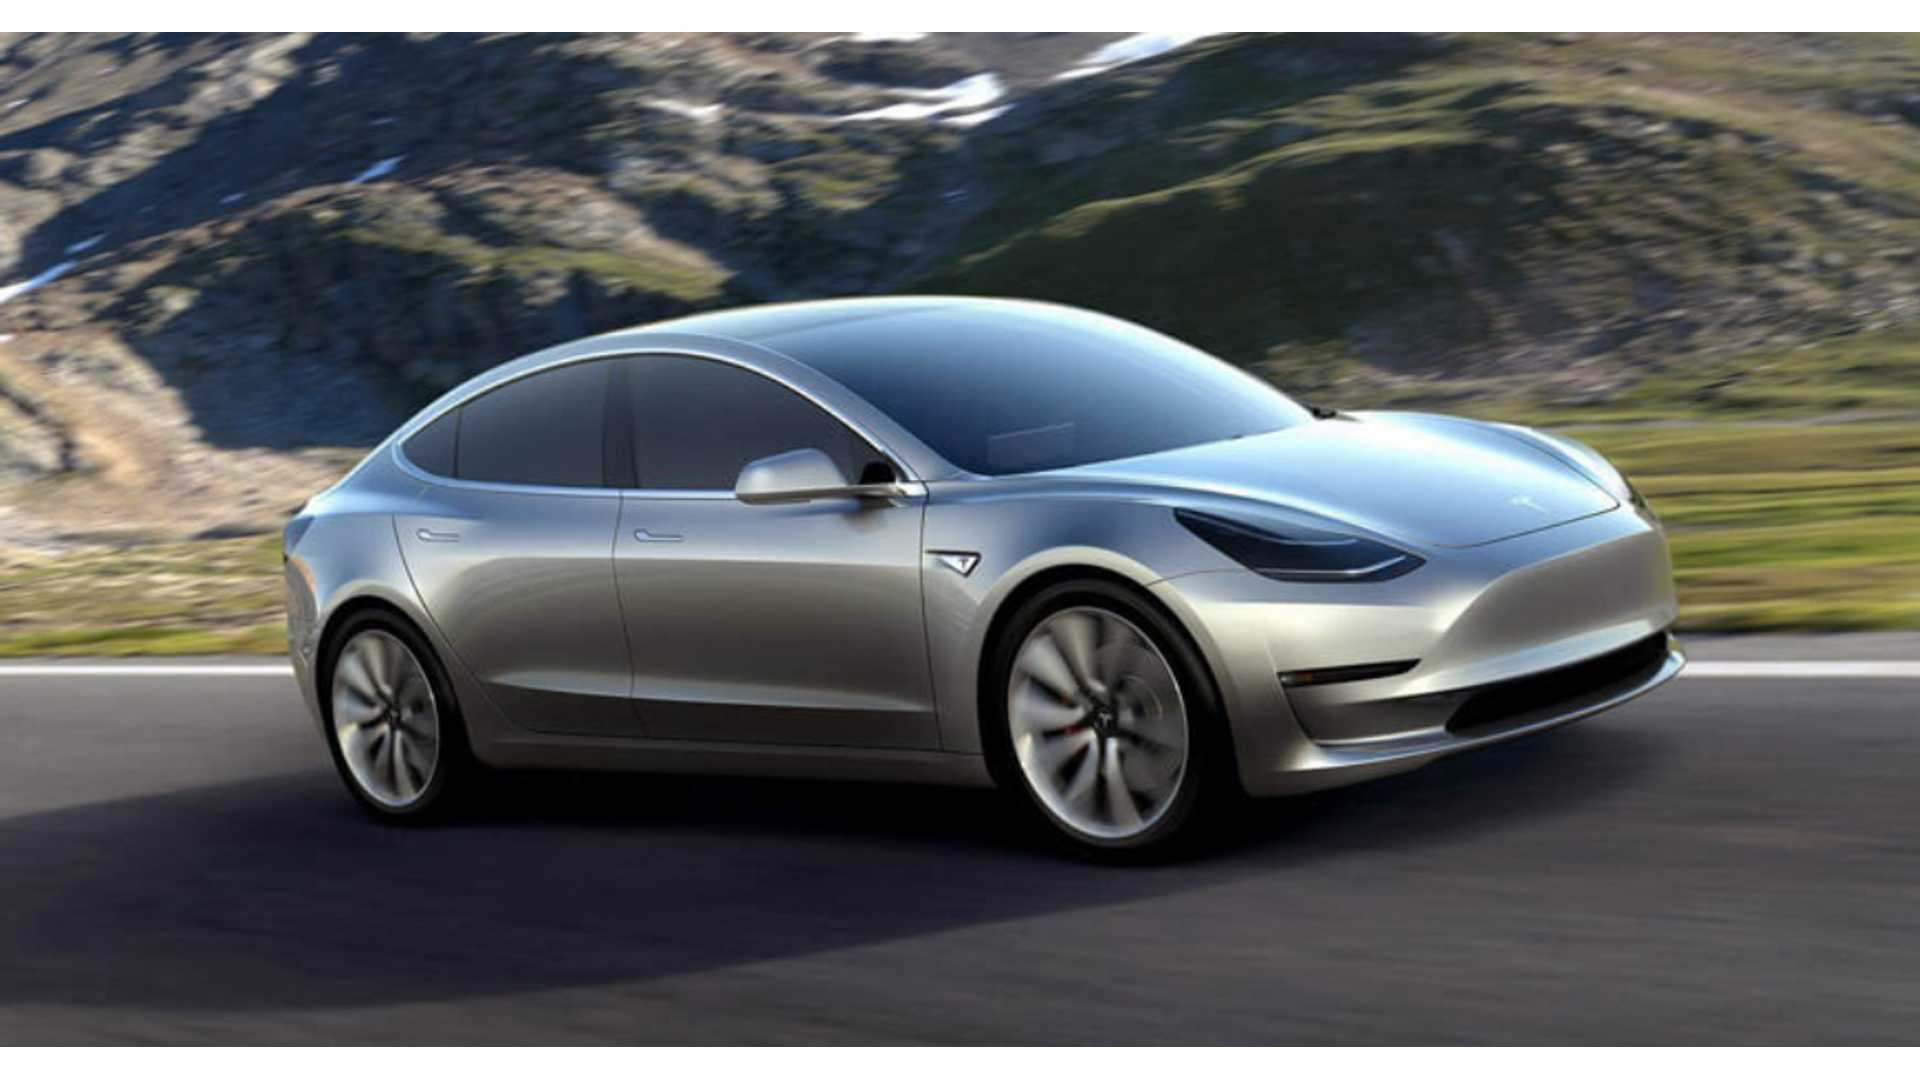 Tesla Model 3 Will Be Ced At 75 Kwh For Now And Have More Range Than Chevy Bolt